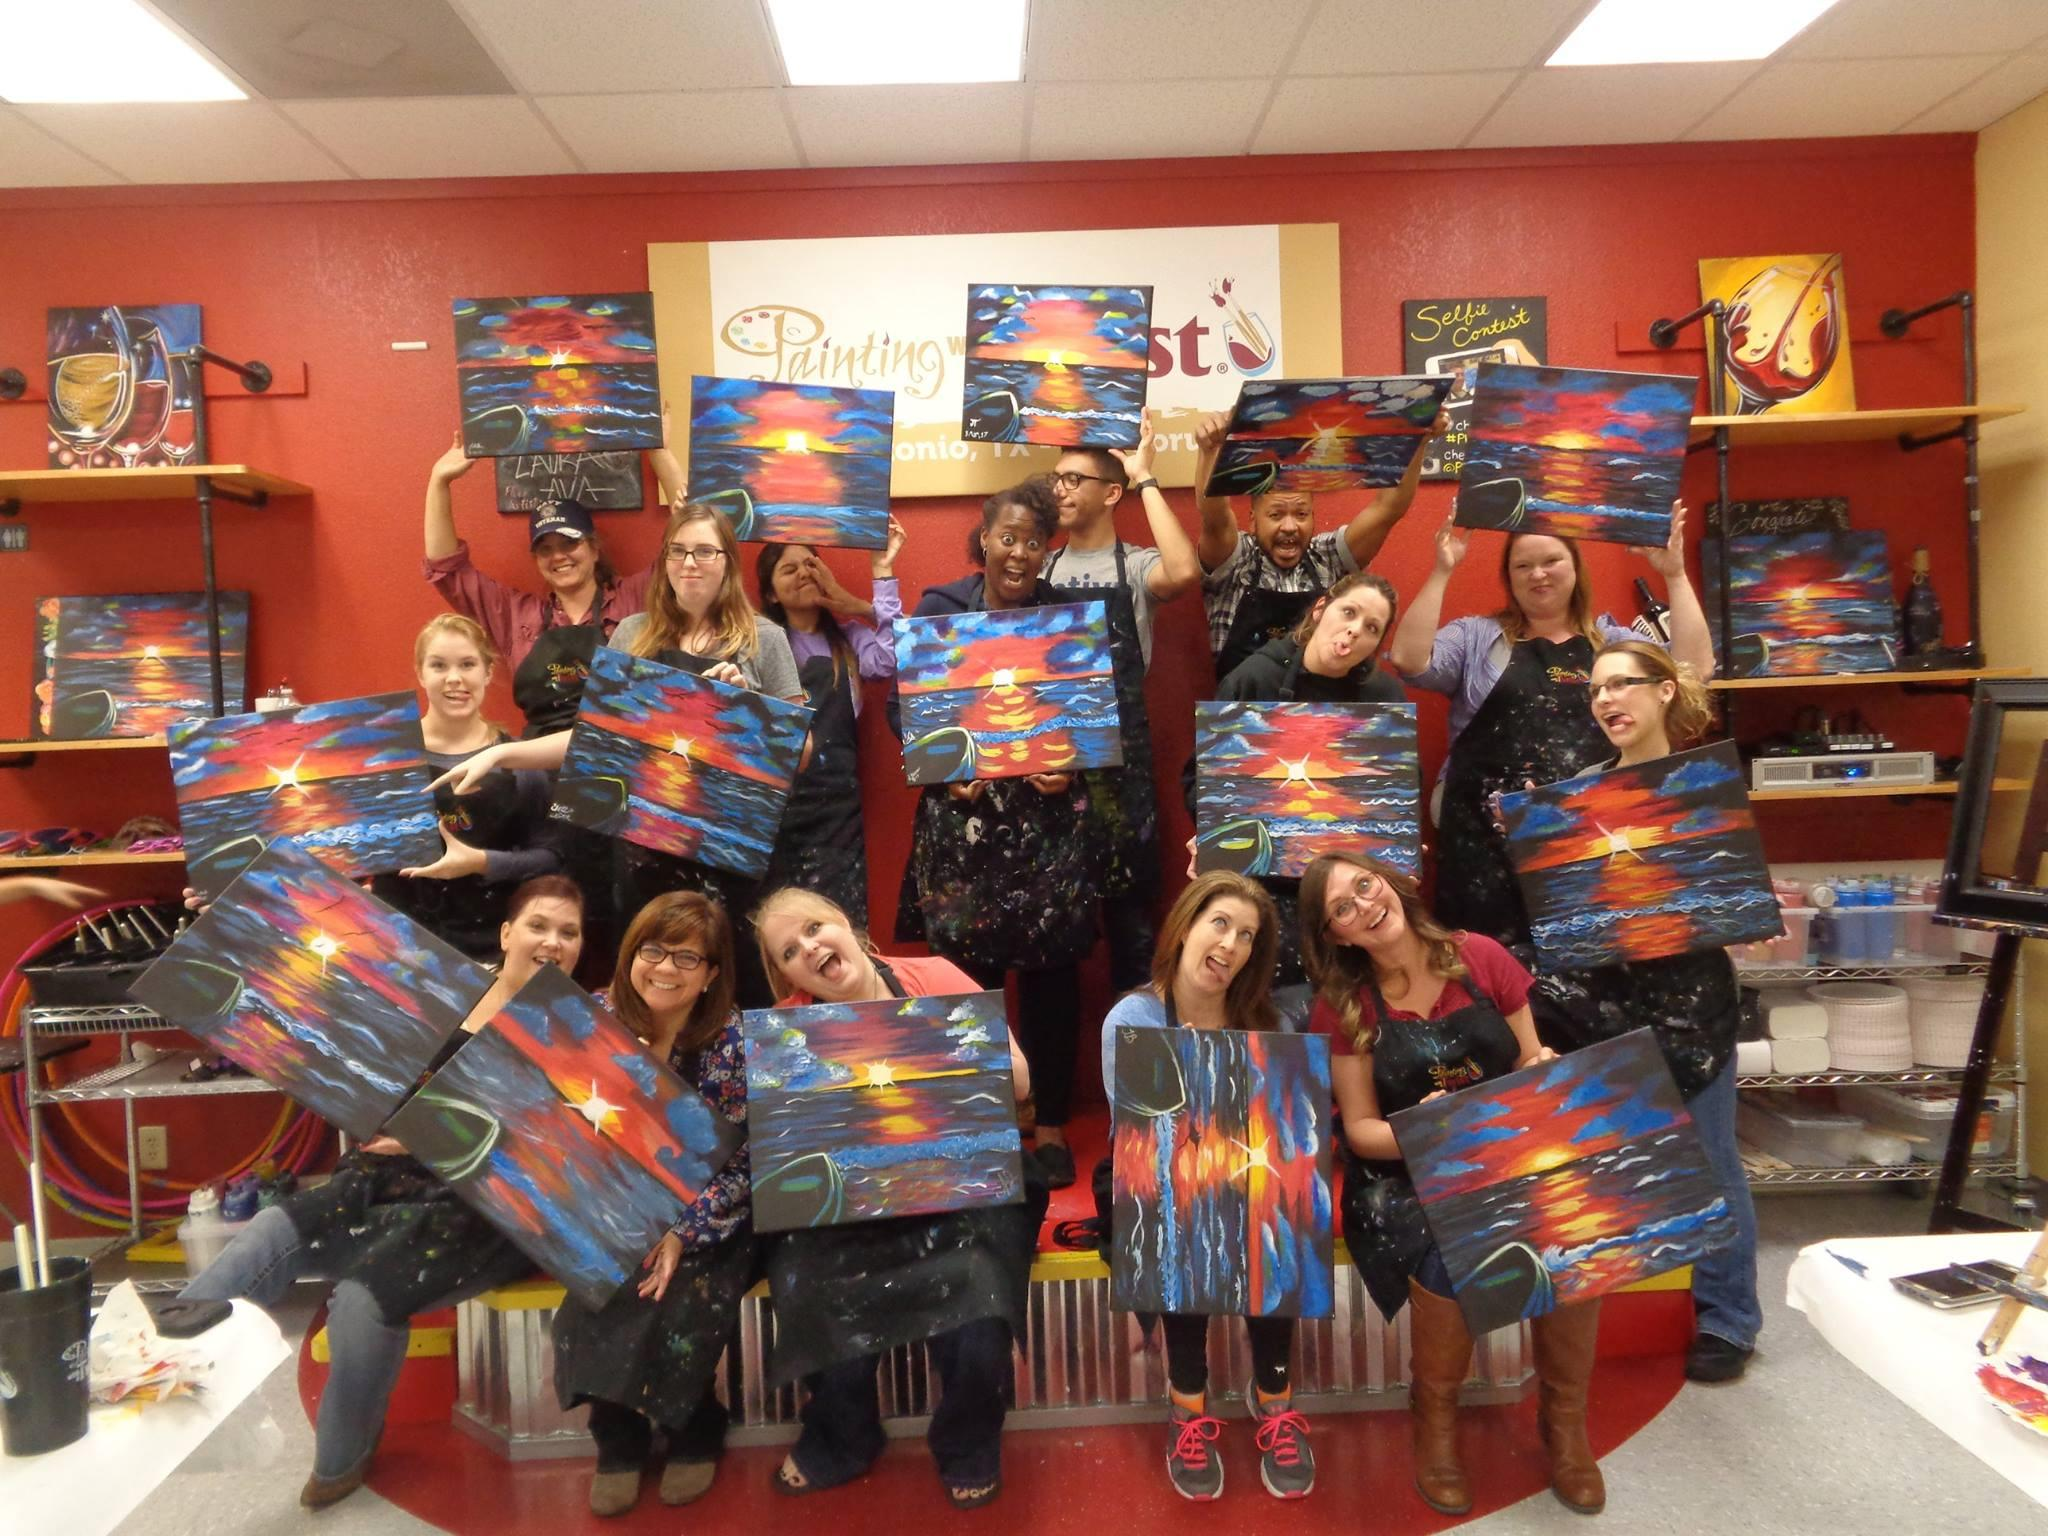 Painting with a twist coupons near me in live oak 8coupons for Wine and paint san antonio